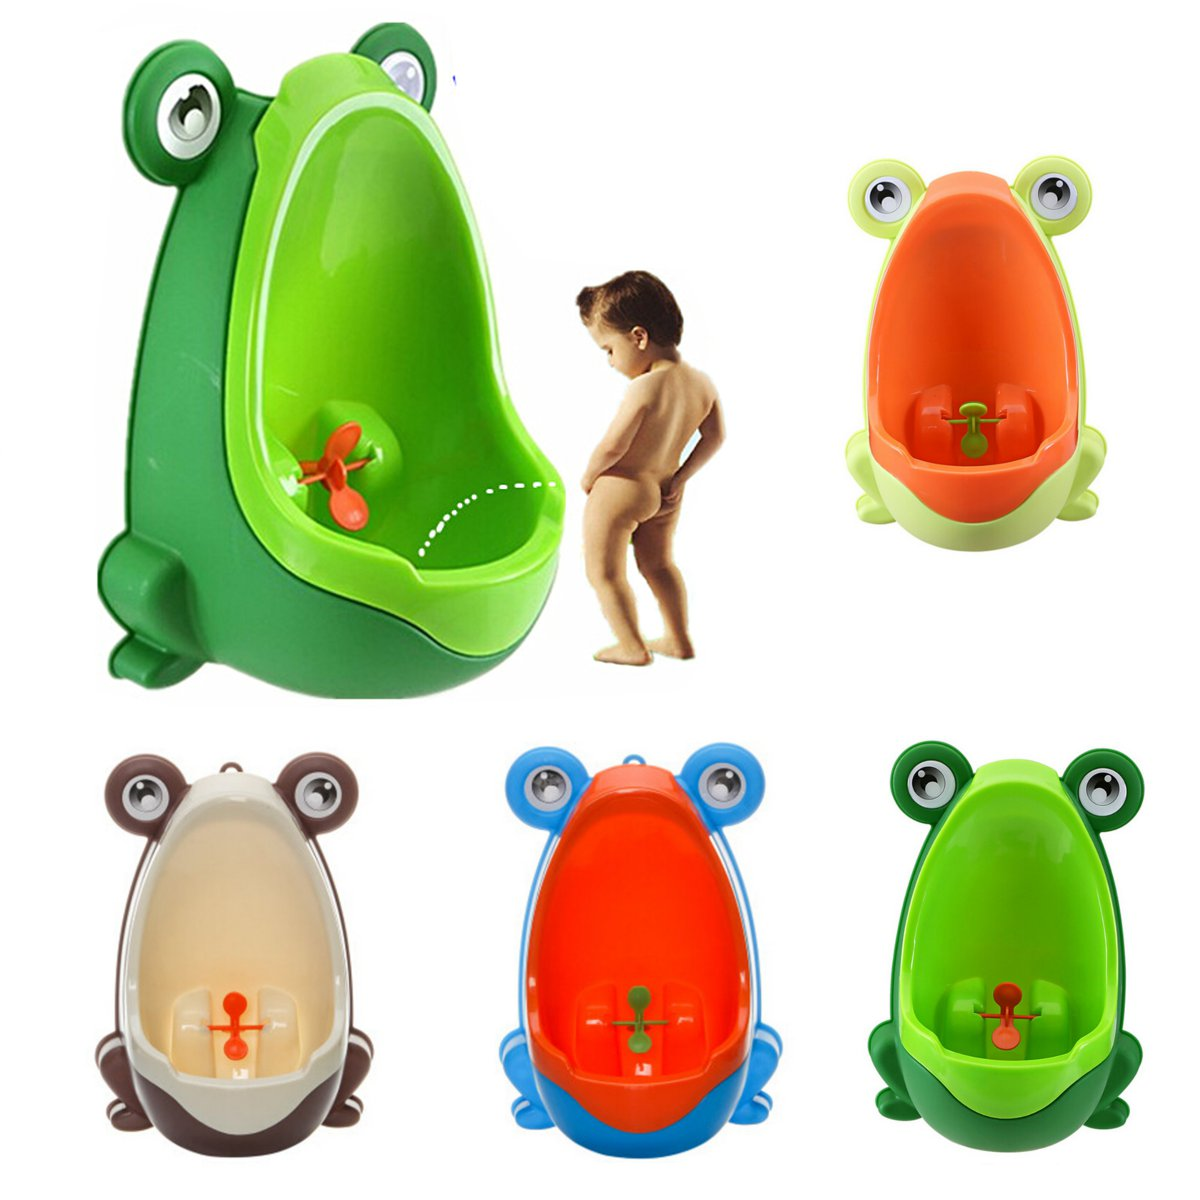 Cute Frog Potty Training Urinal Toilet Urine Train Froggy Potty for Children Kids Toddler Baby Boys, Portable Plastic Male Urinals,Pee Trainer Funny Aiming Target